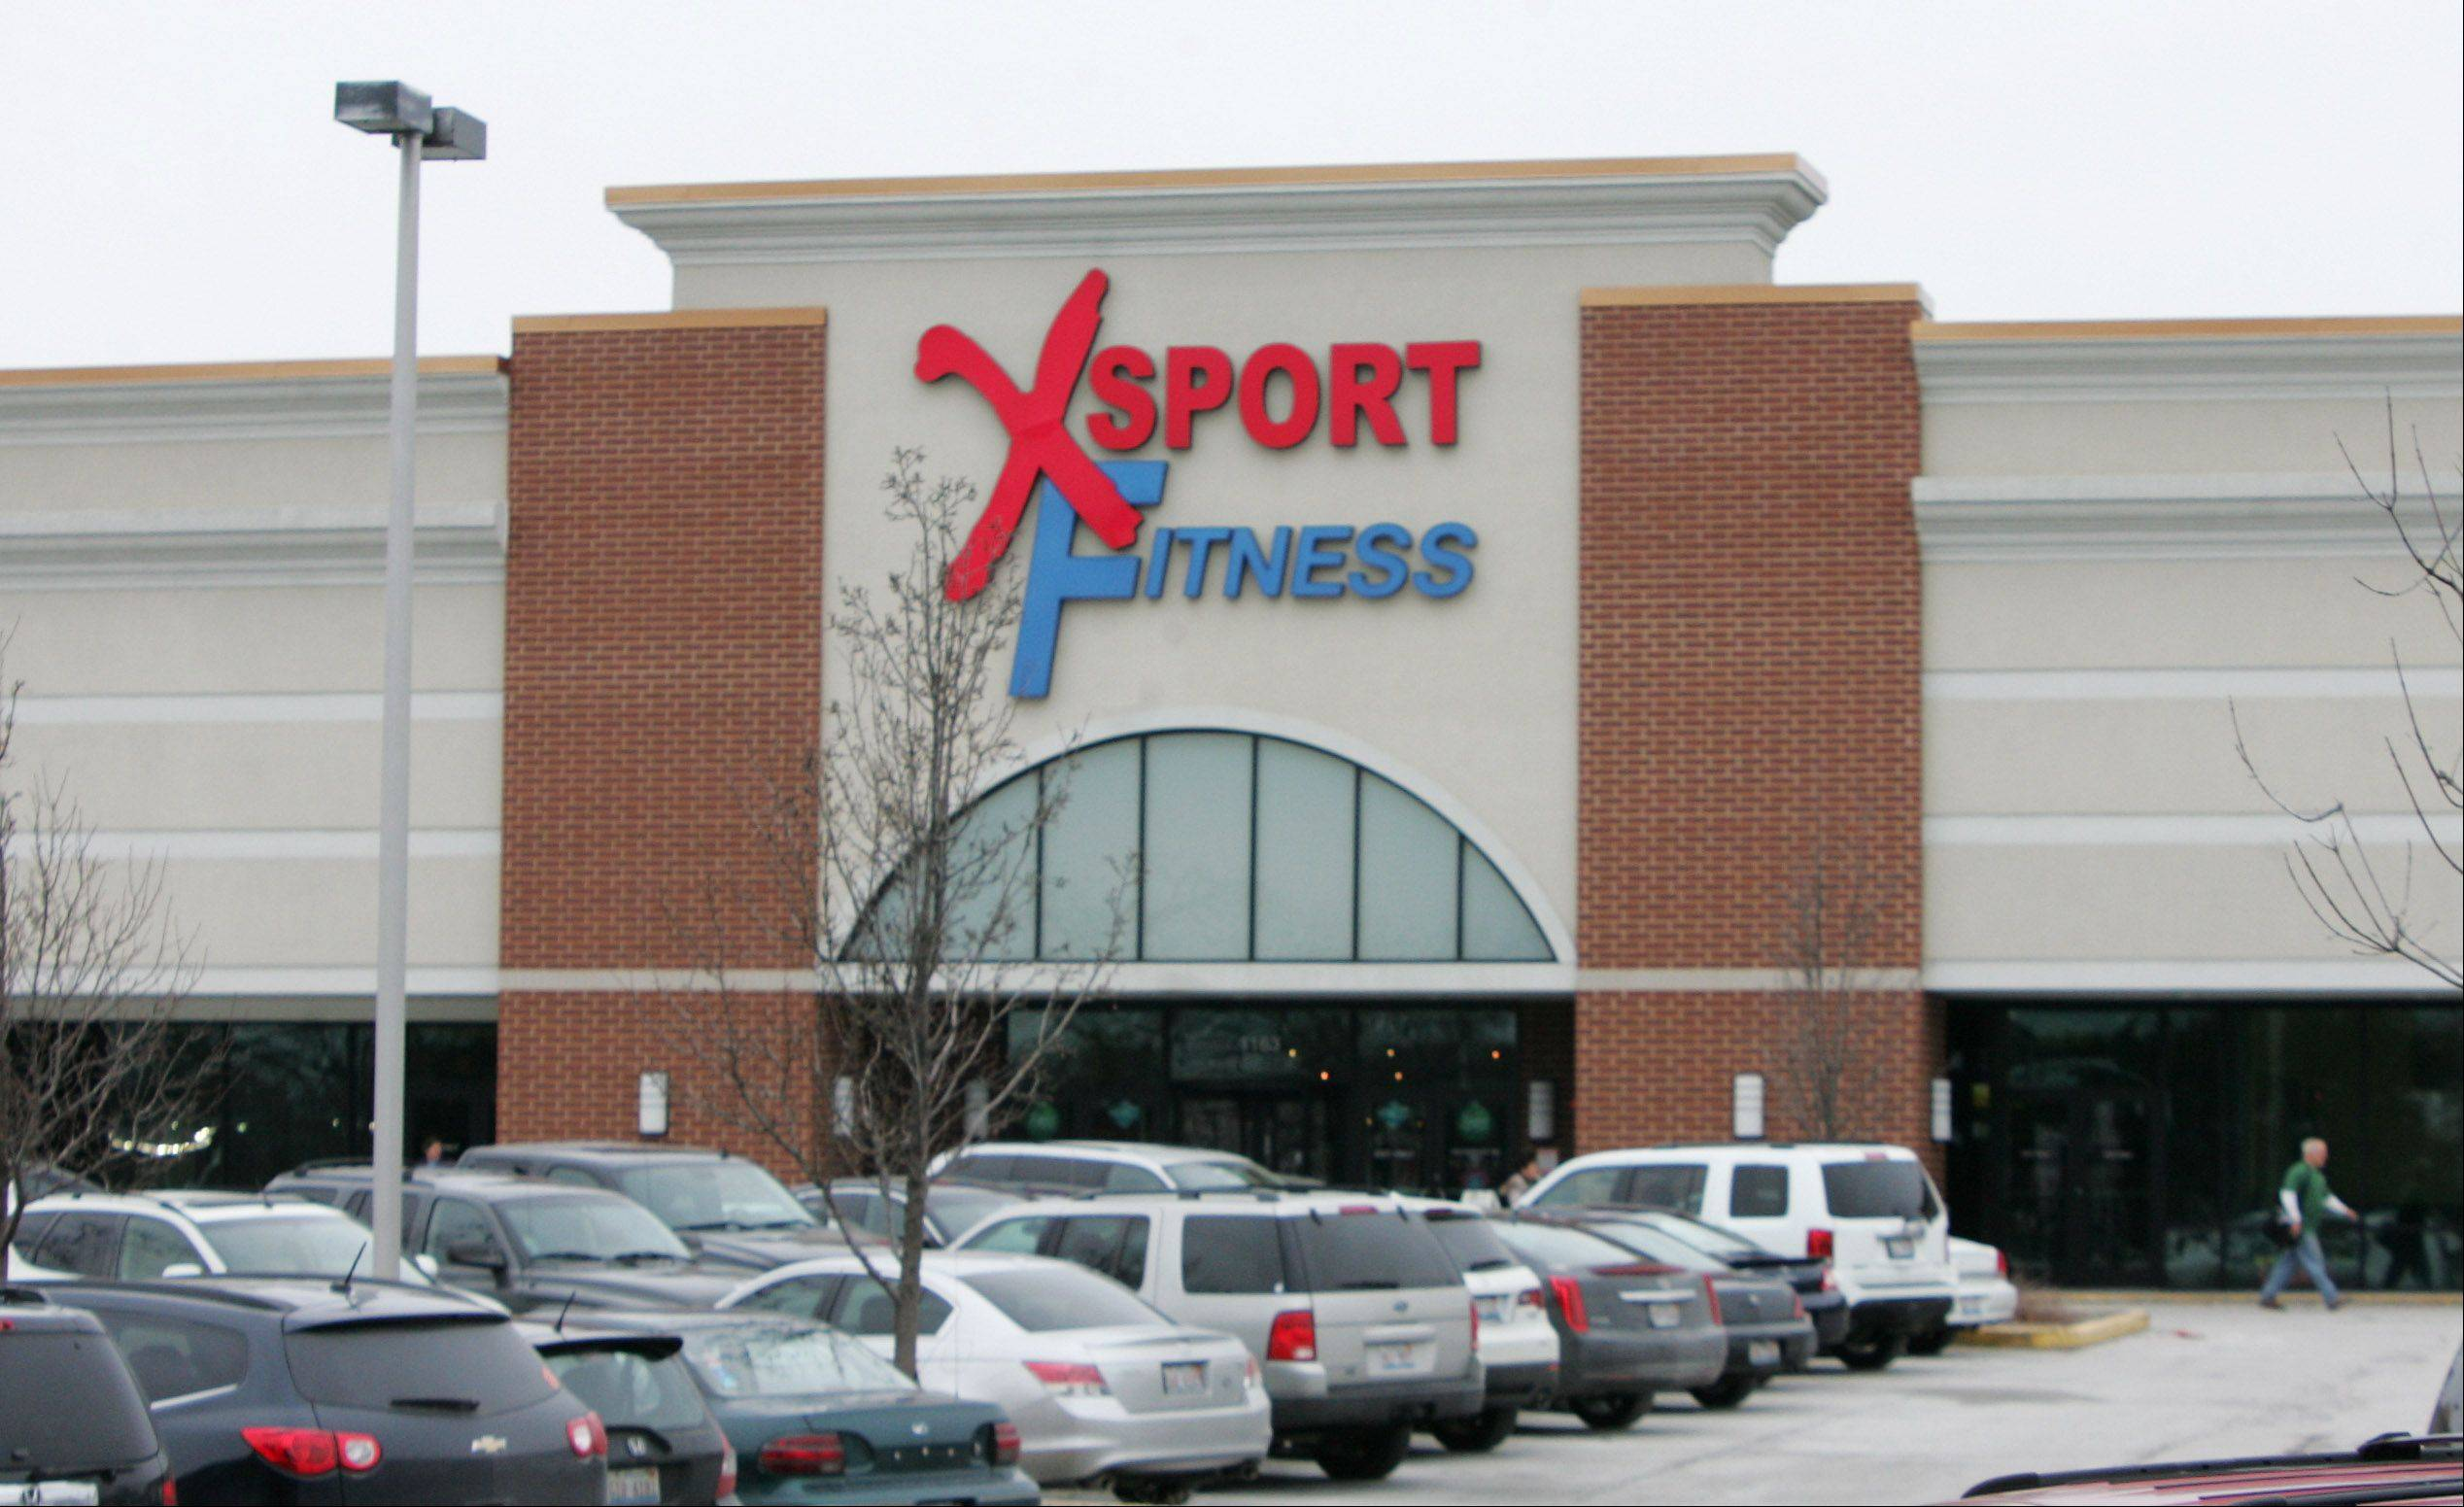 Federal officials have proposed penalties totaling $60,000 against a Libertyville health club for purportedly failing to provide protective equipment to employees who worked with hazardous chemicals. Officials announced the proposed fine Monday against the parent company of the XSport Fitness in Libertyville.